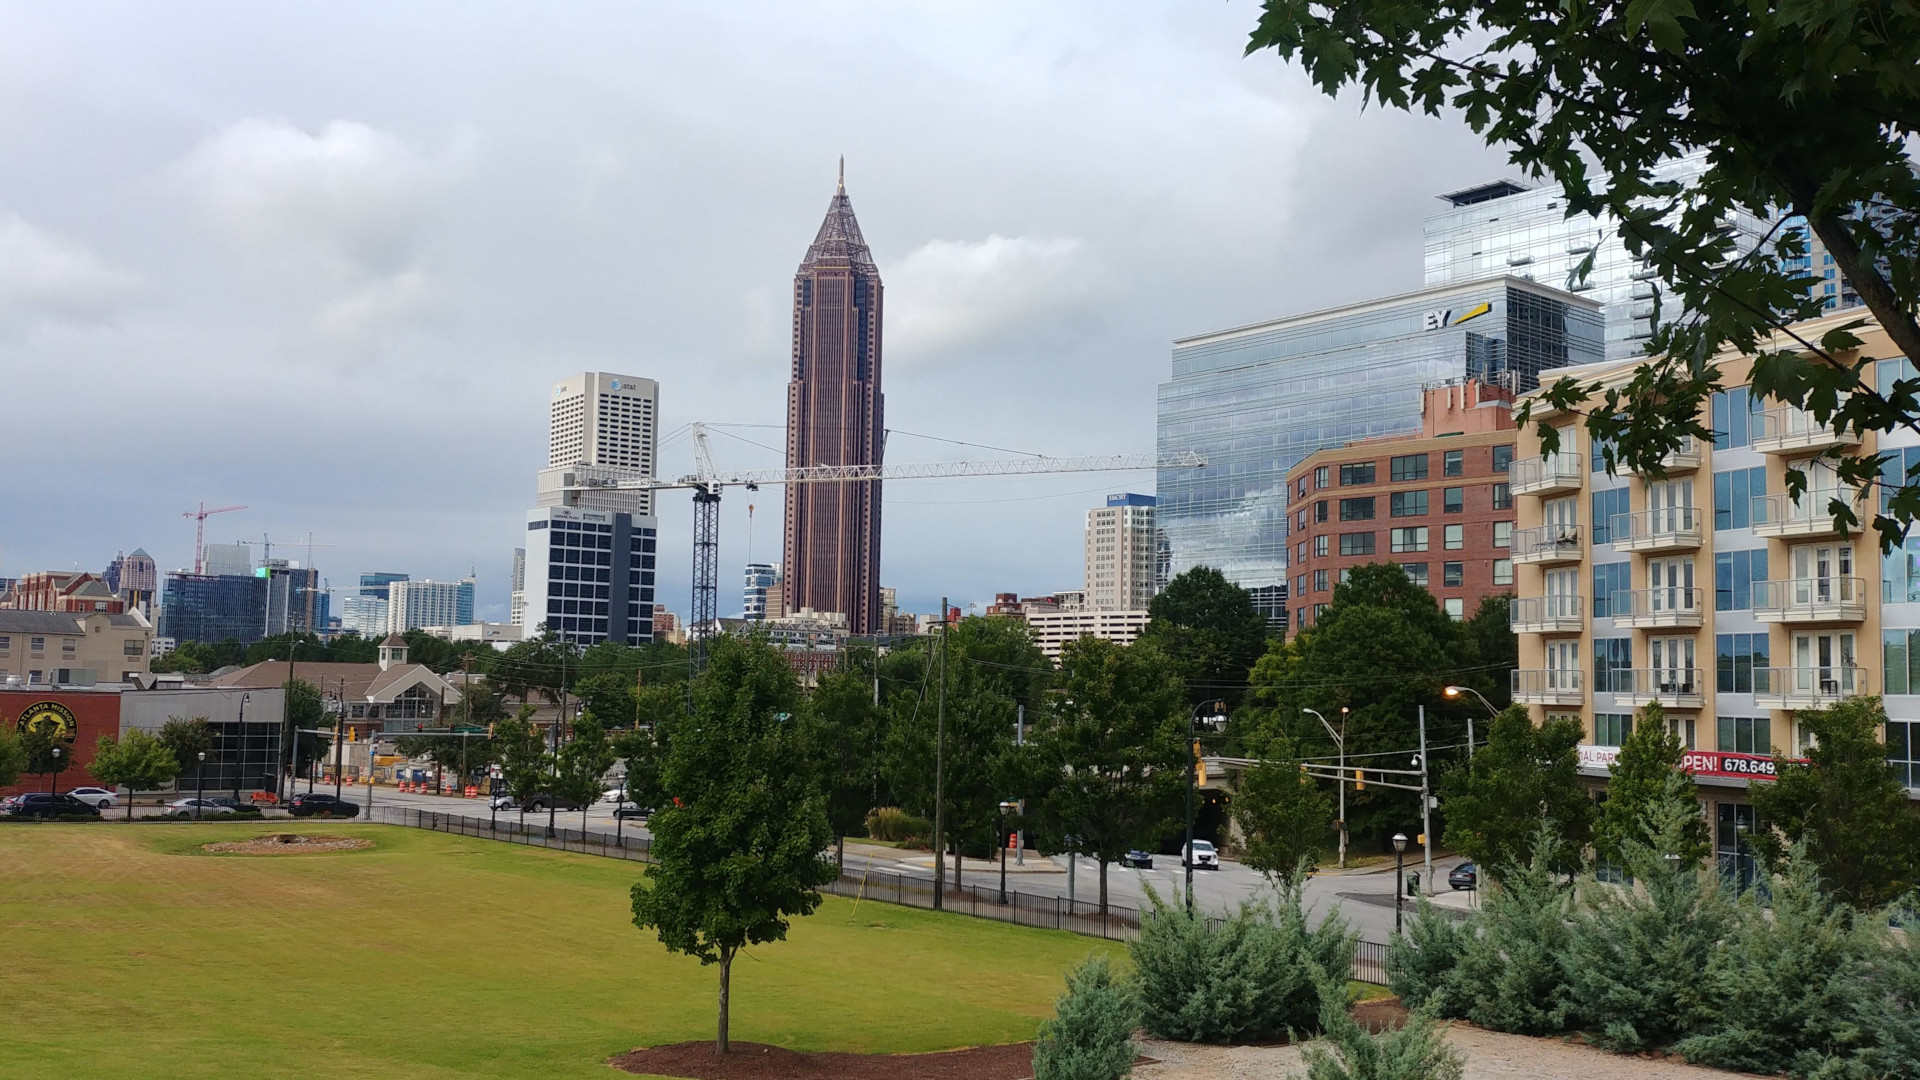 Atlanta Downtown from the World of Coca Cola entrance